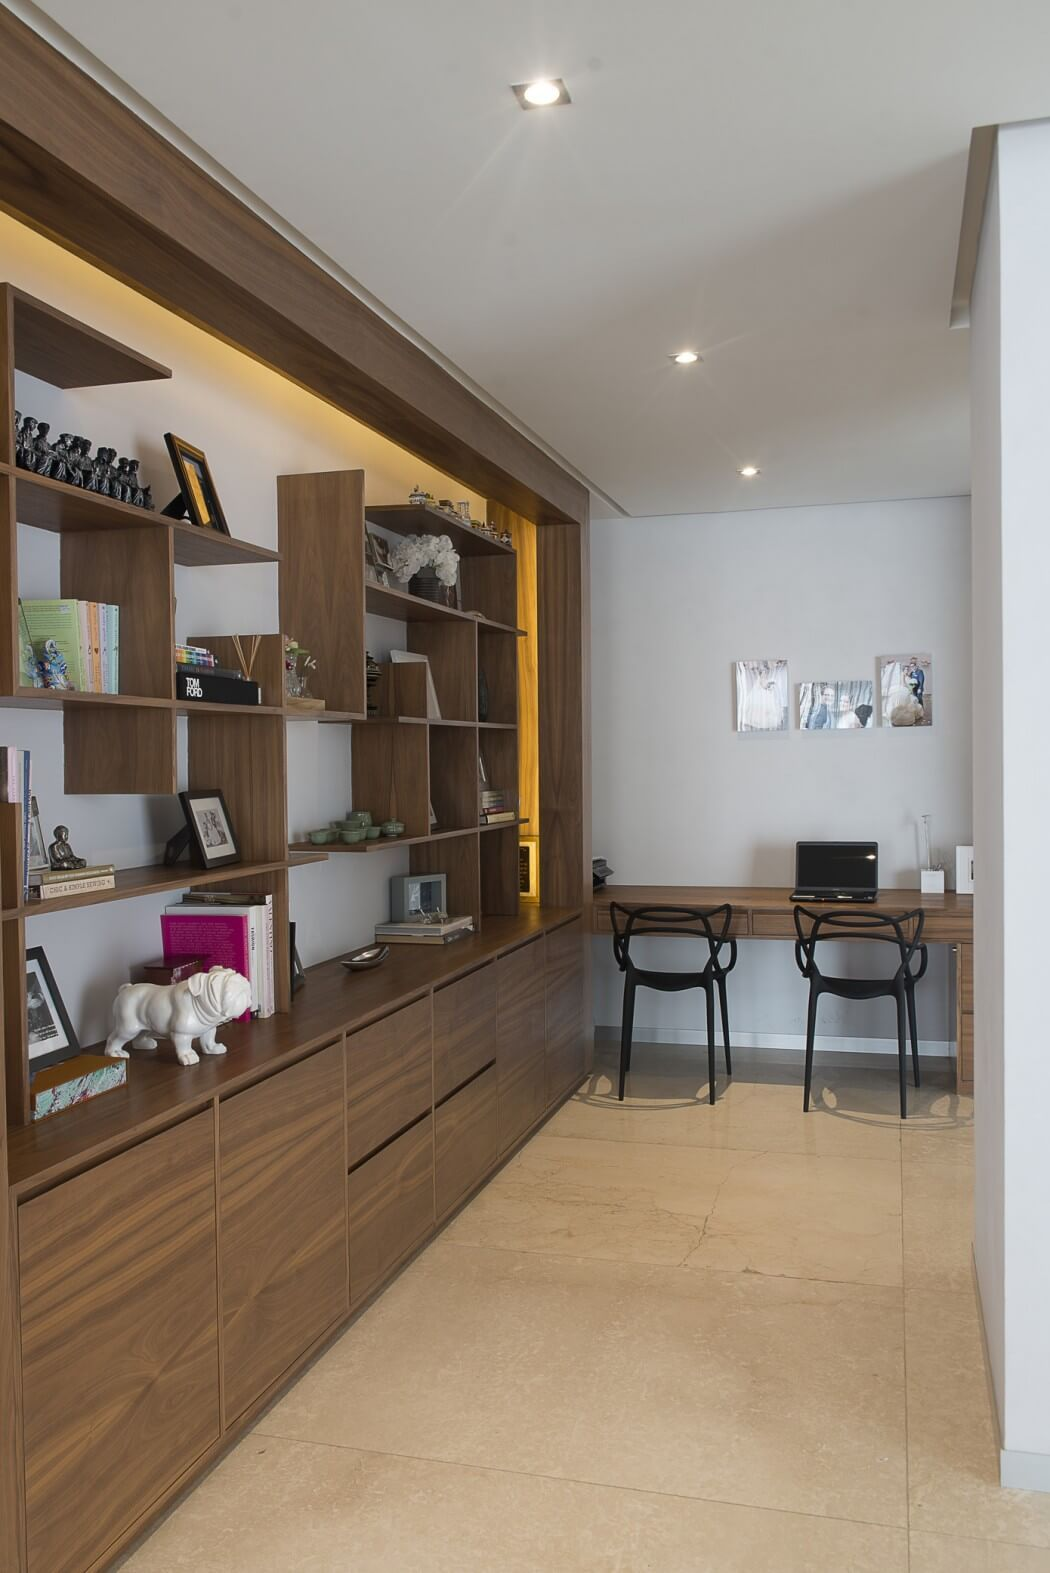 home office mexico. An Unexpectedly Vibrant Mix Of Textures In A Neutral Palette Is Unified By The Harmonious Ceiling And Walls Reclaimed Wood This Mexico Apartment. Home Office S